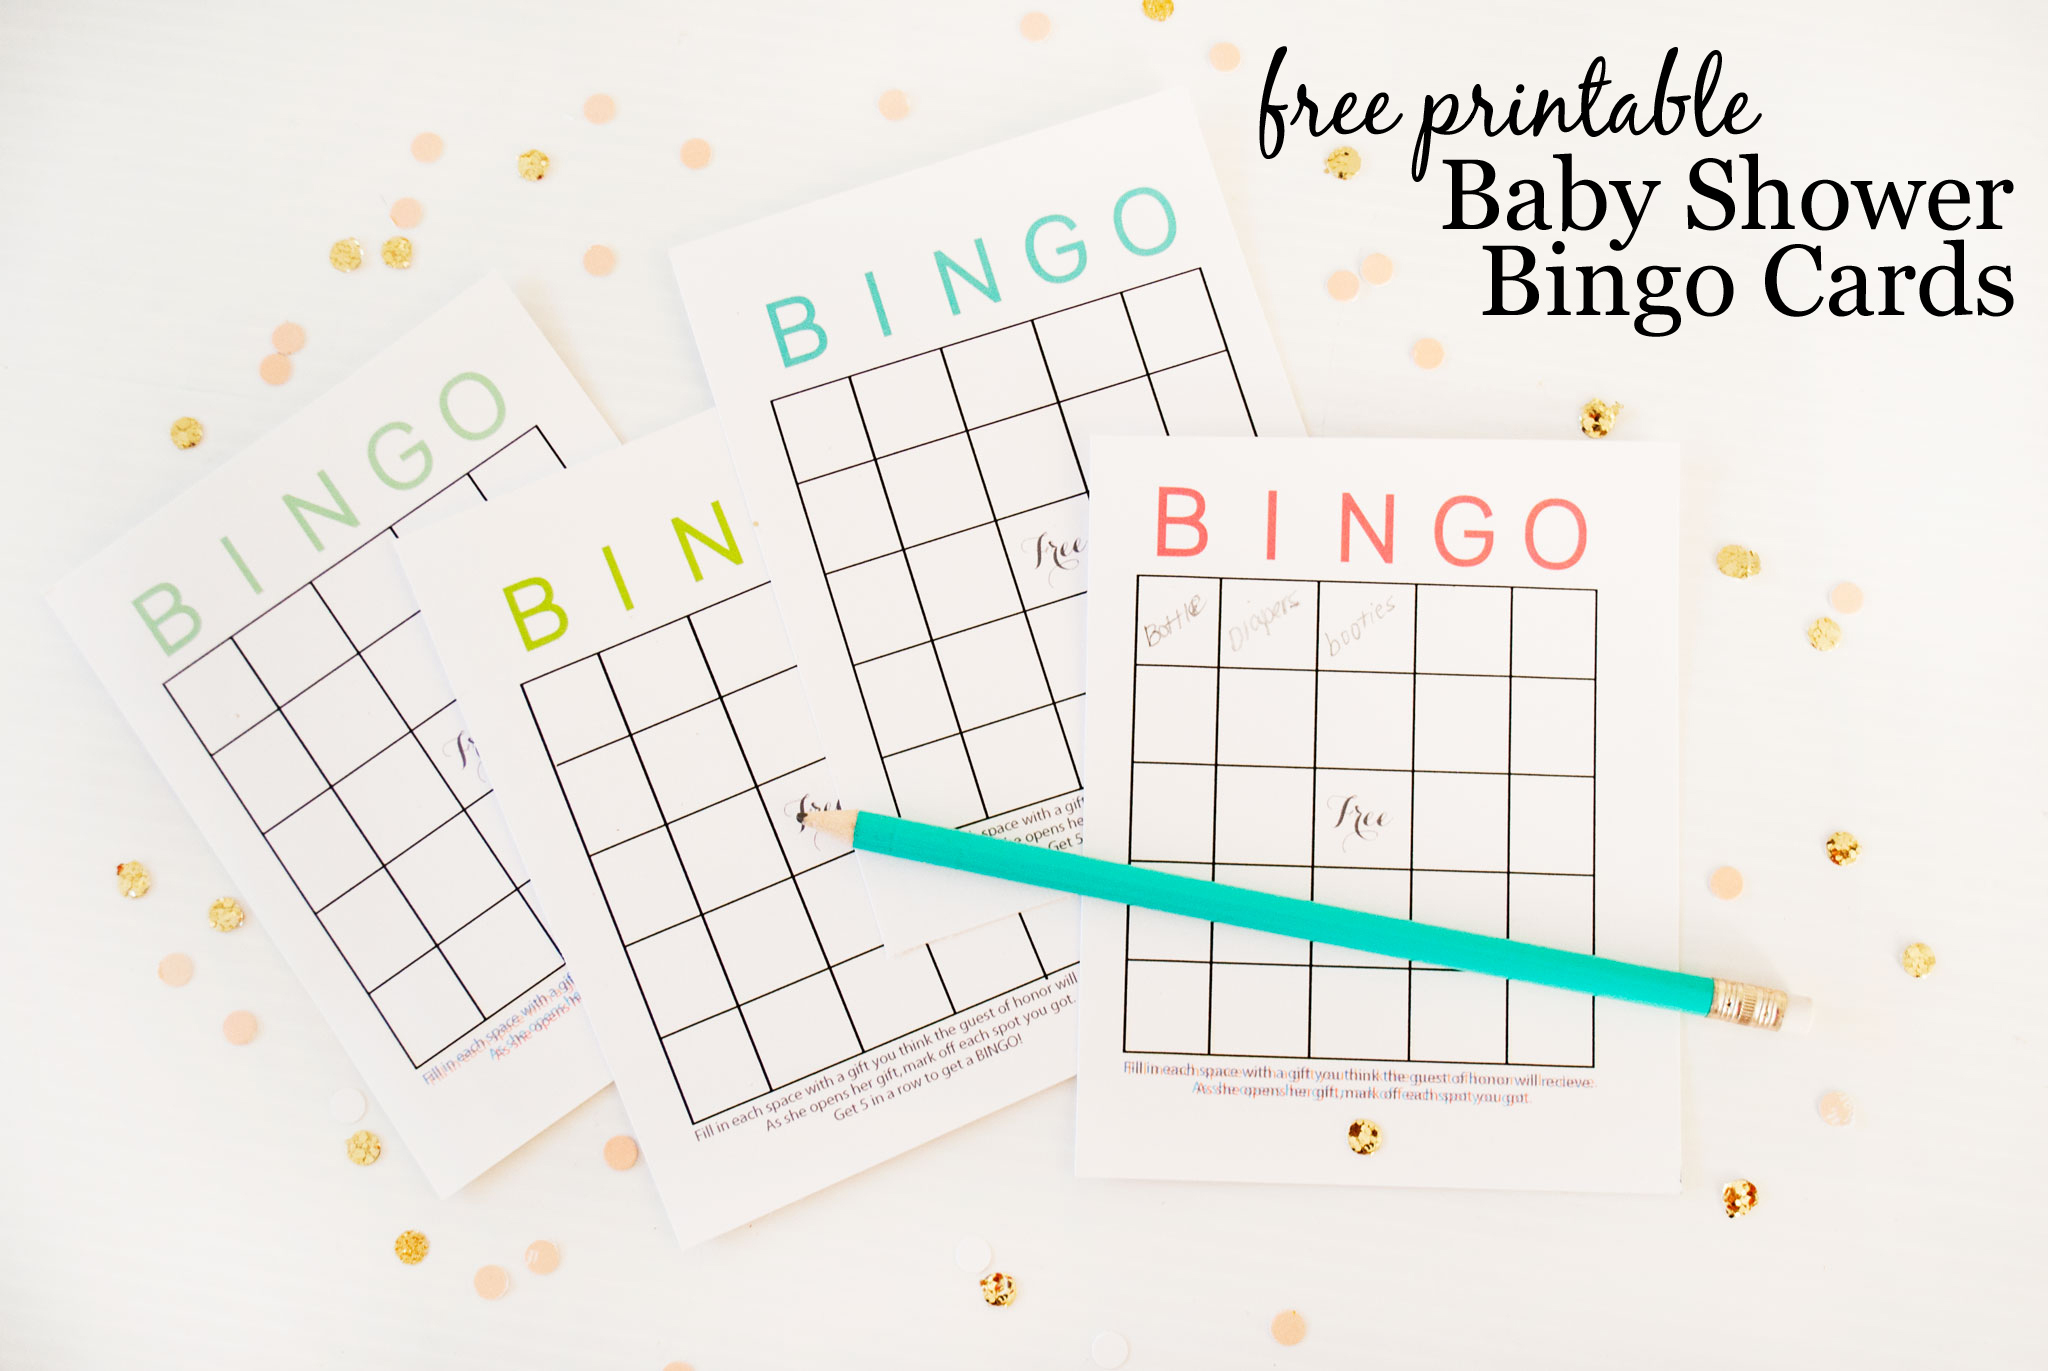 Free Printable Baby Shower Bingo Cards - Project Nursery - Baby Bingo Free Printable